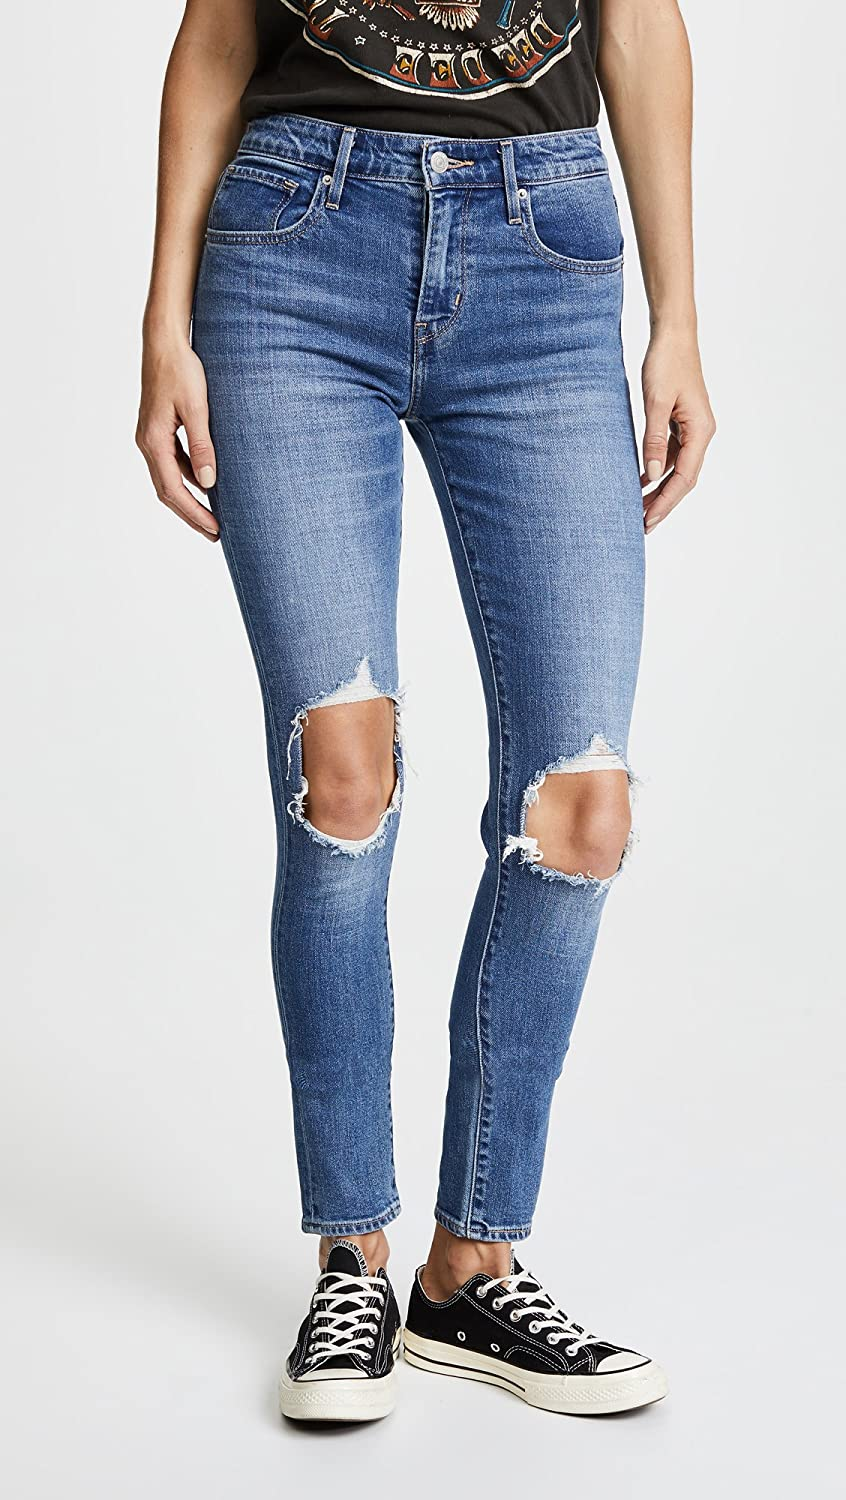 Levi's Women's 721 High Rise Distressed Skinny Jeans at Amazon Women's  Jeans store